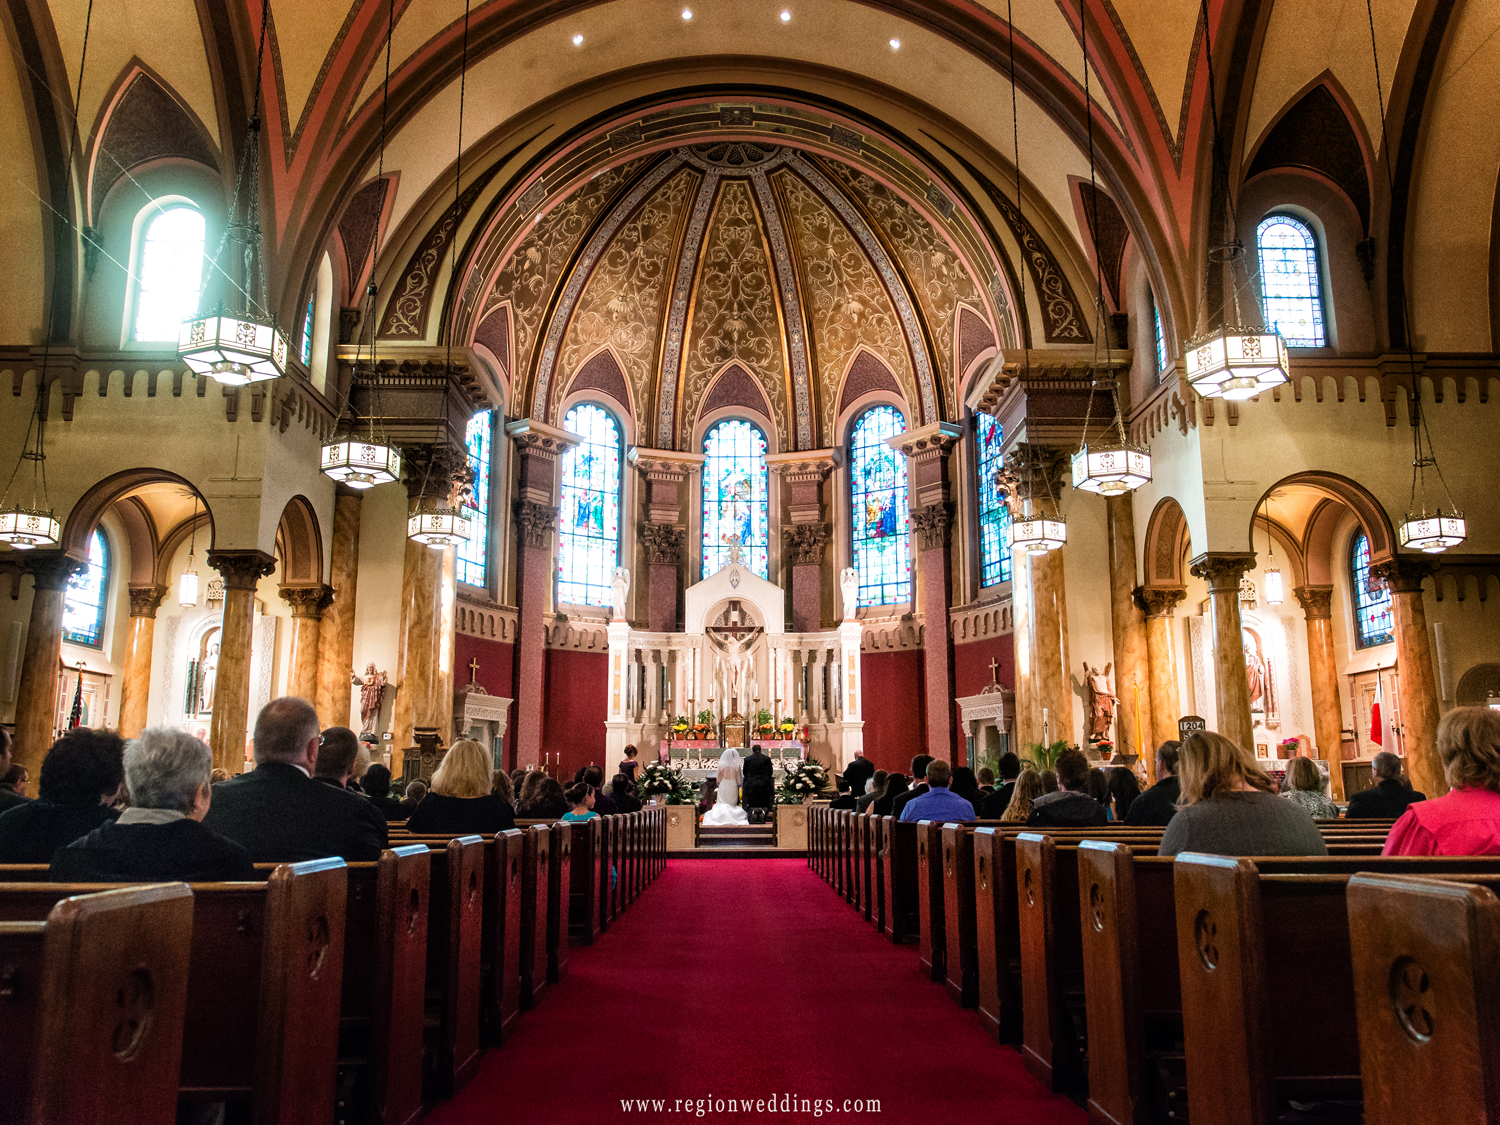 A wide angle view of a wedding ceremony at Saint Andrew's Church in Calumet City.